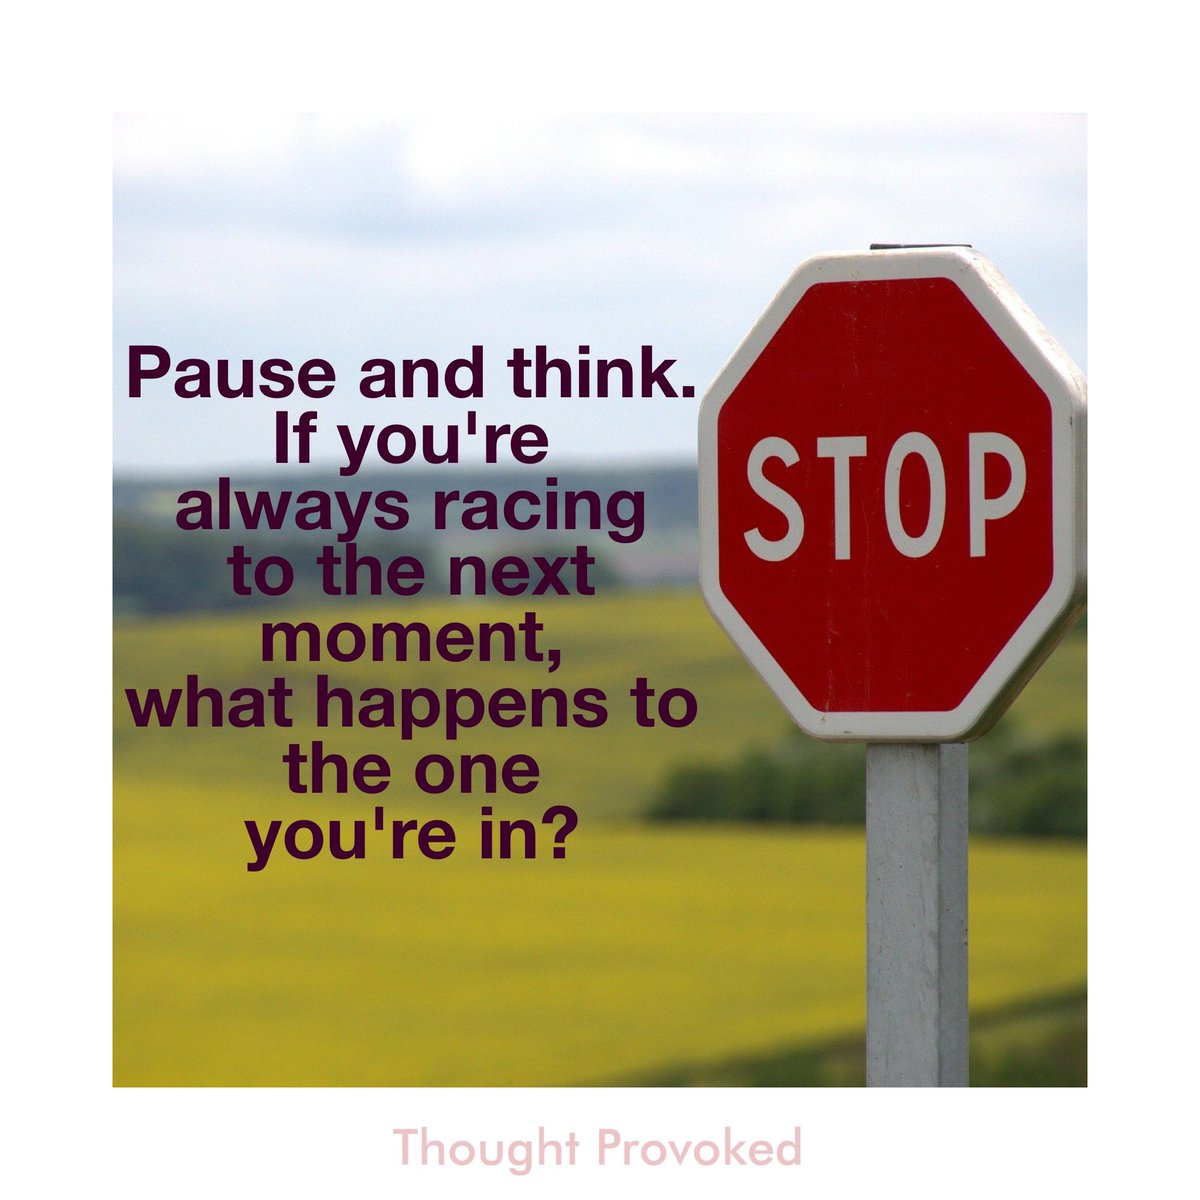 🚦 Pause and think. If you're always racing to the next moment, what happens to the one you're in?  #slowdown #quote #IQRTG #thursdaymorning #quotes #Motivation #MotivationalQuotes